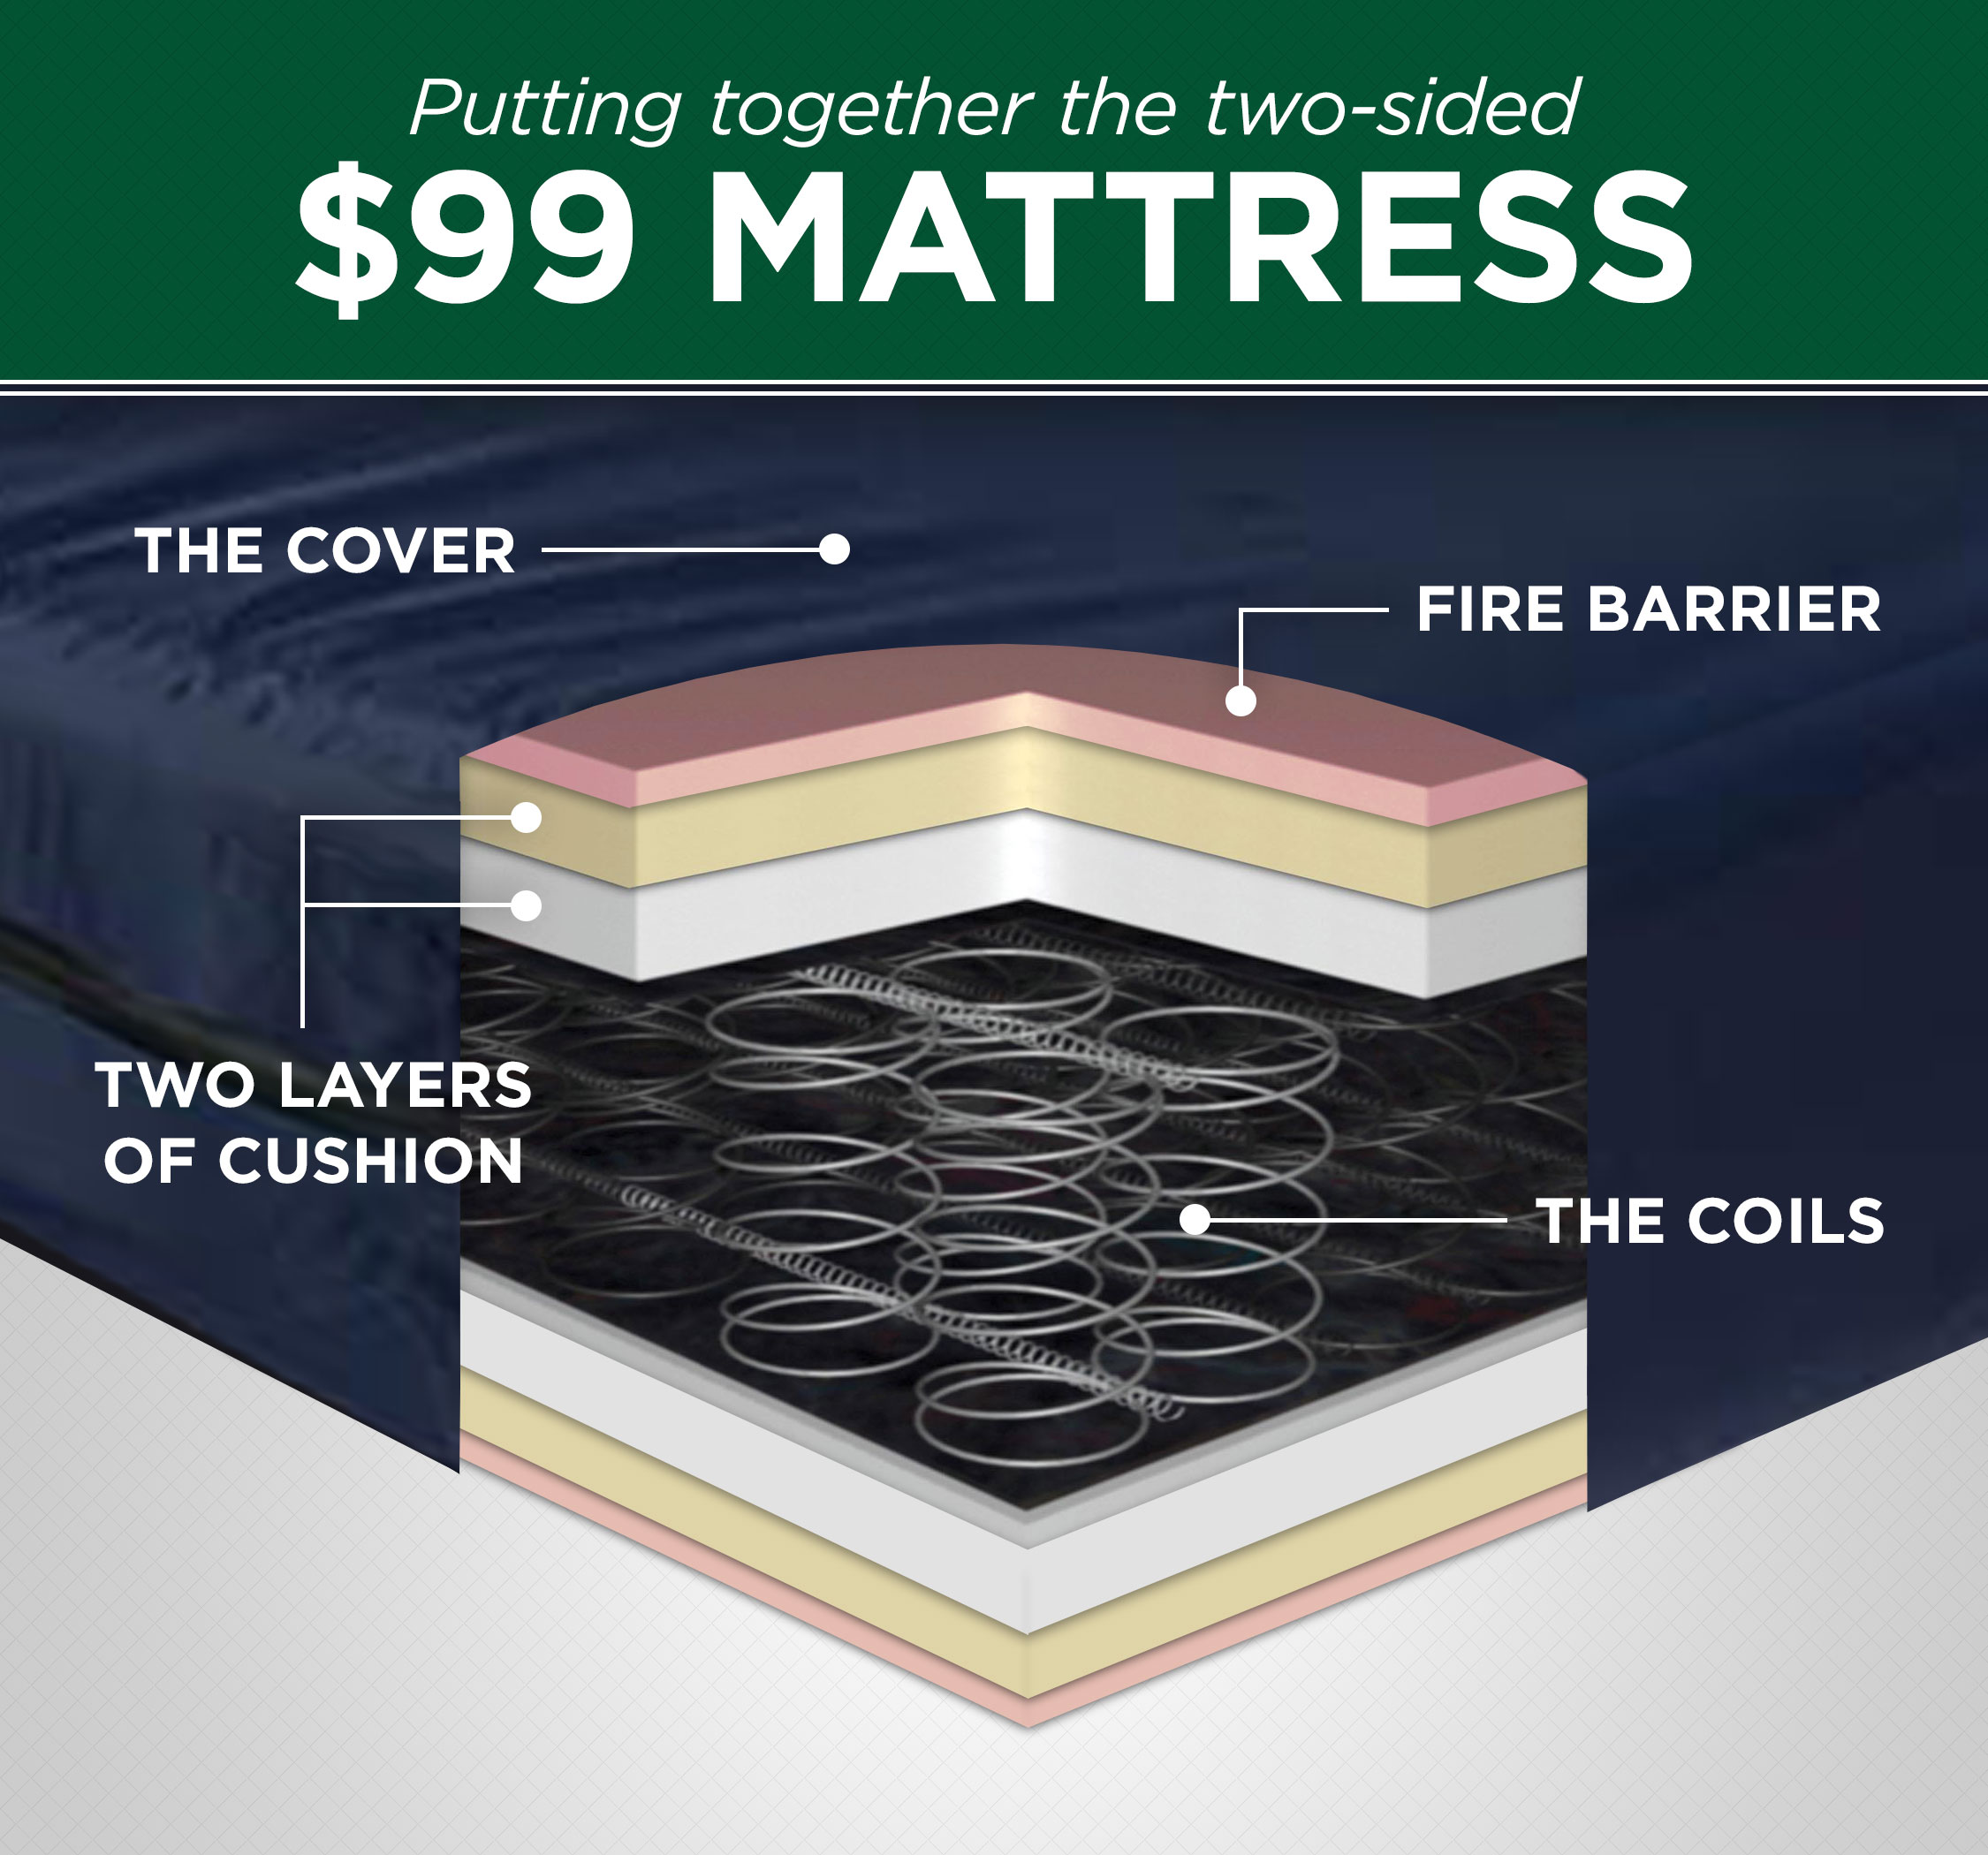 $99mattress-inside-diagram[v3]